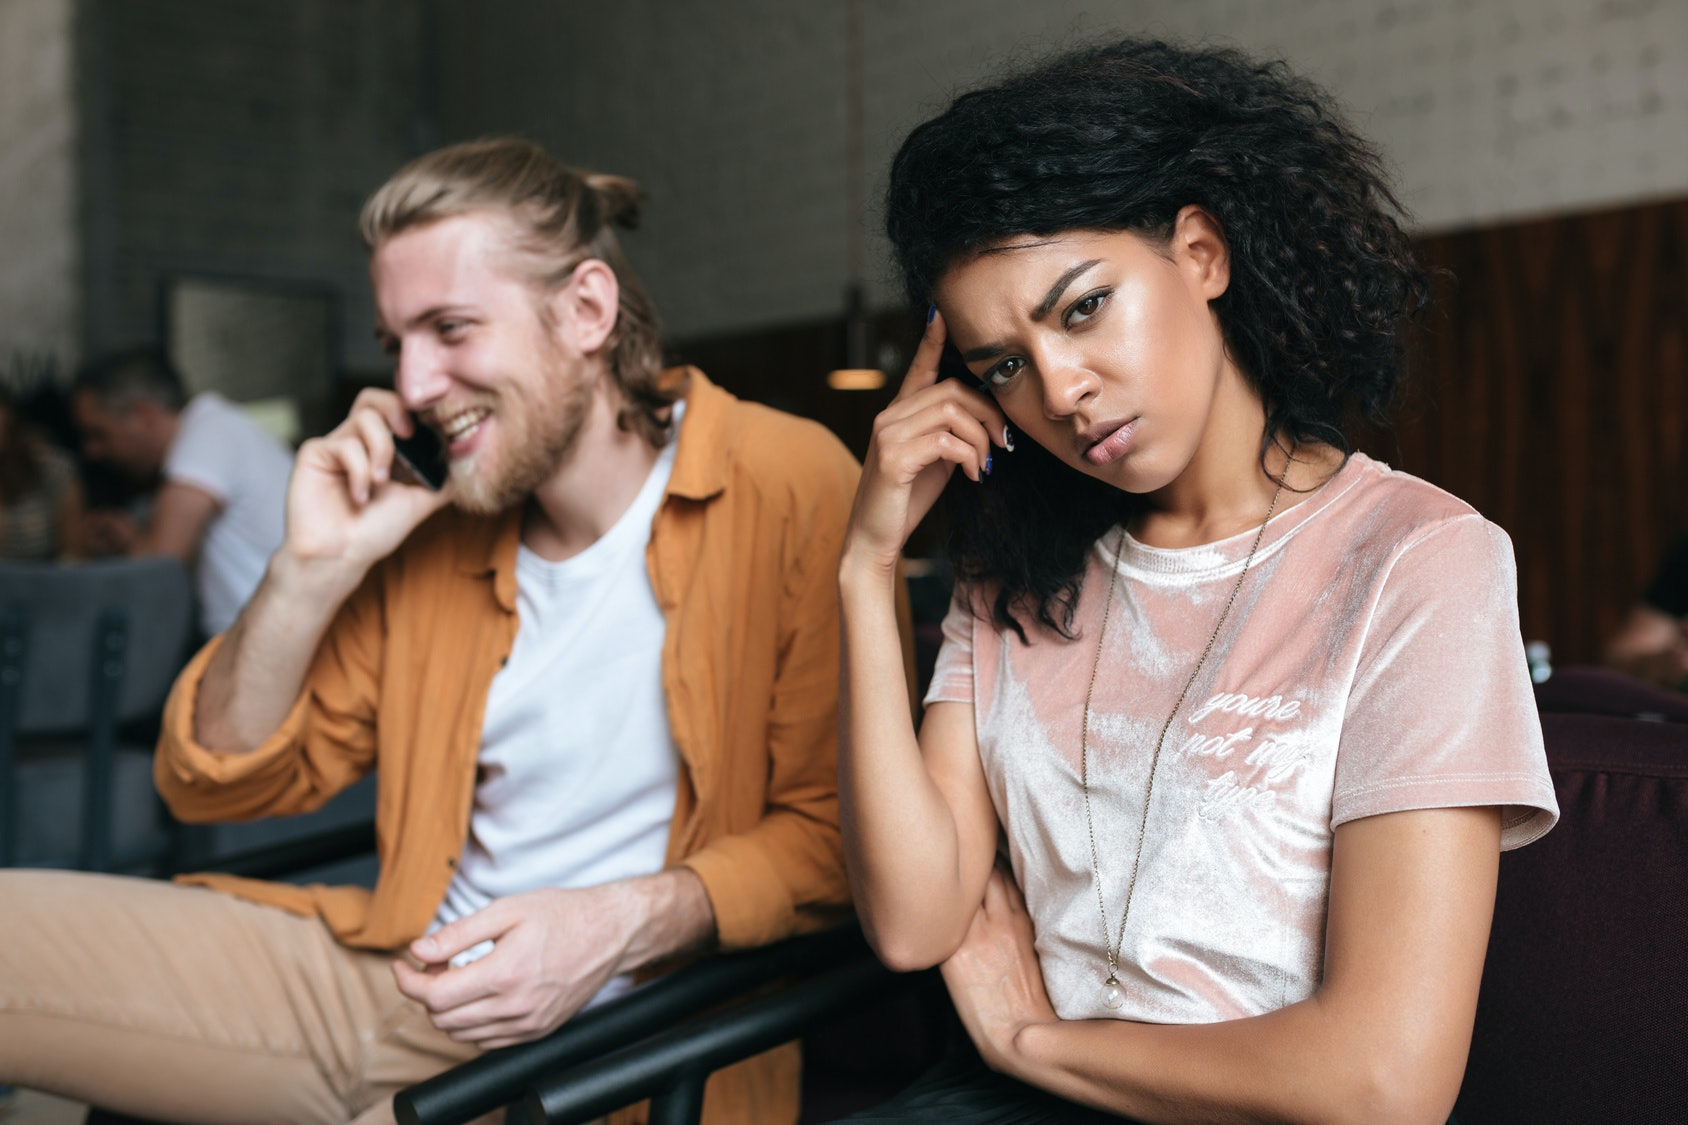 Signs your casual relationship is getting serious